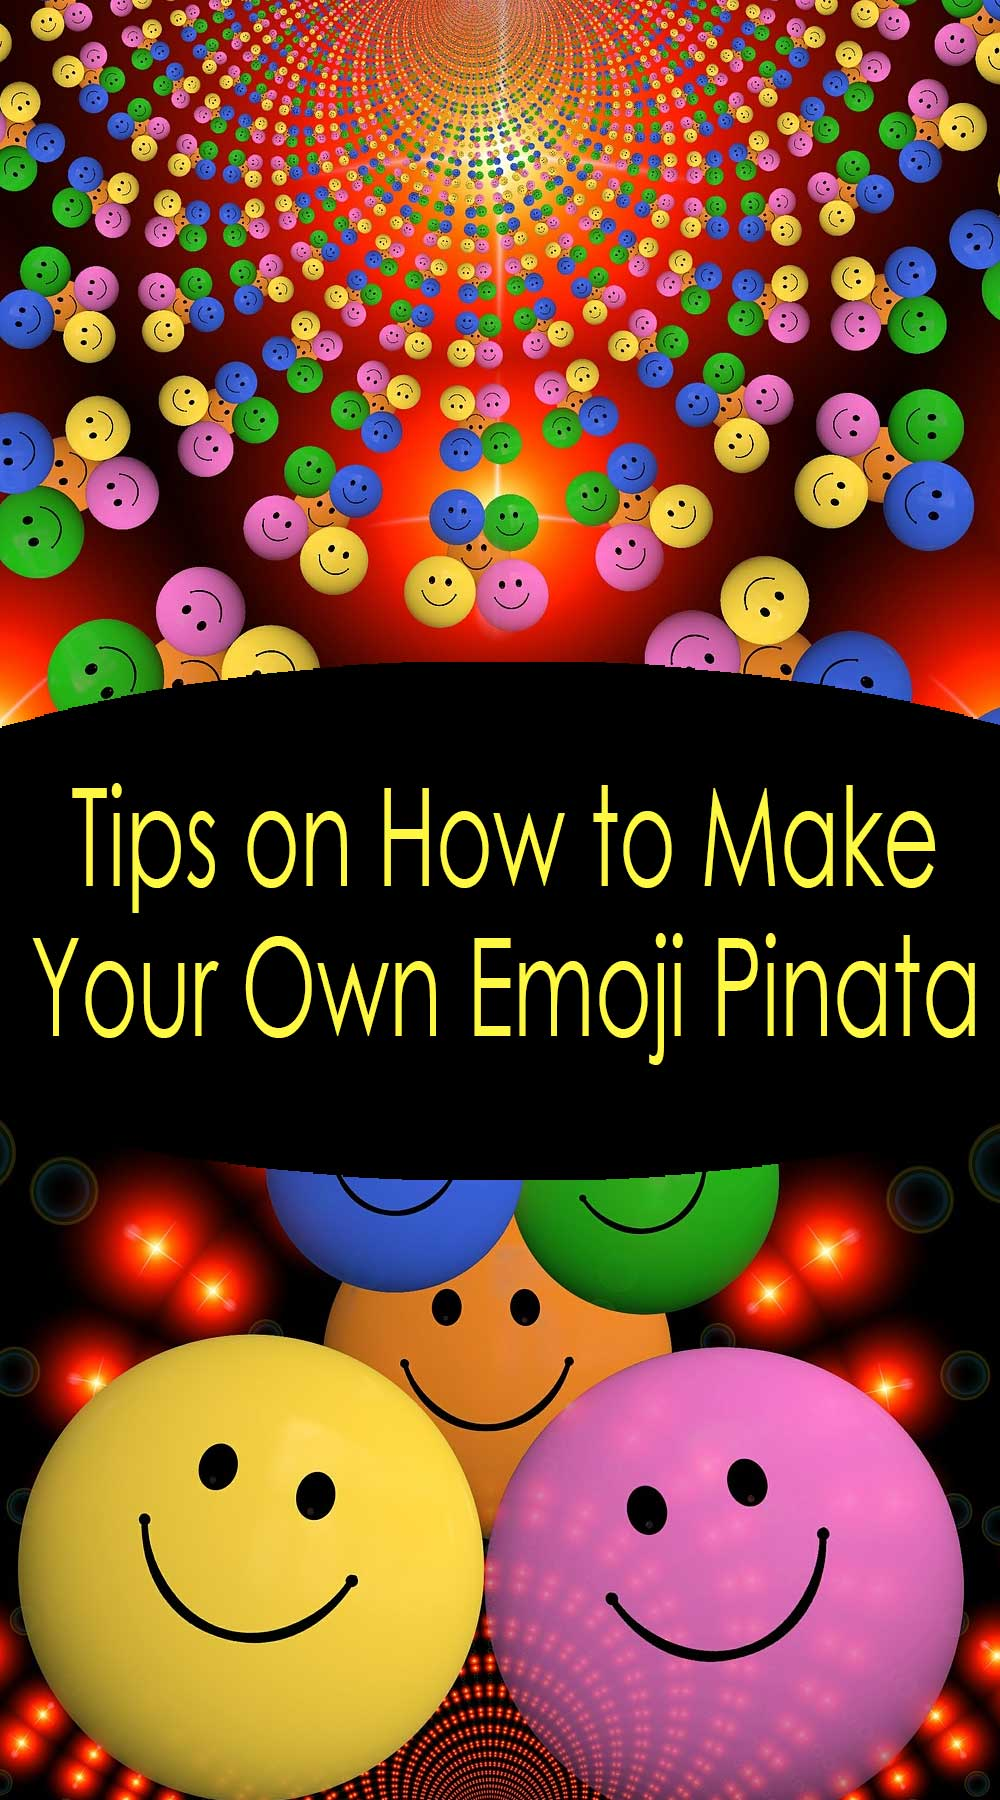 Tips on How to Make Your Own Emoji Pinata